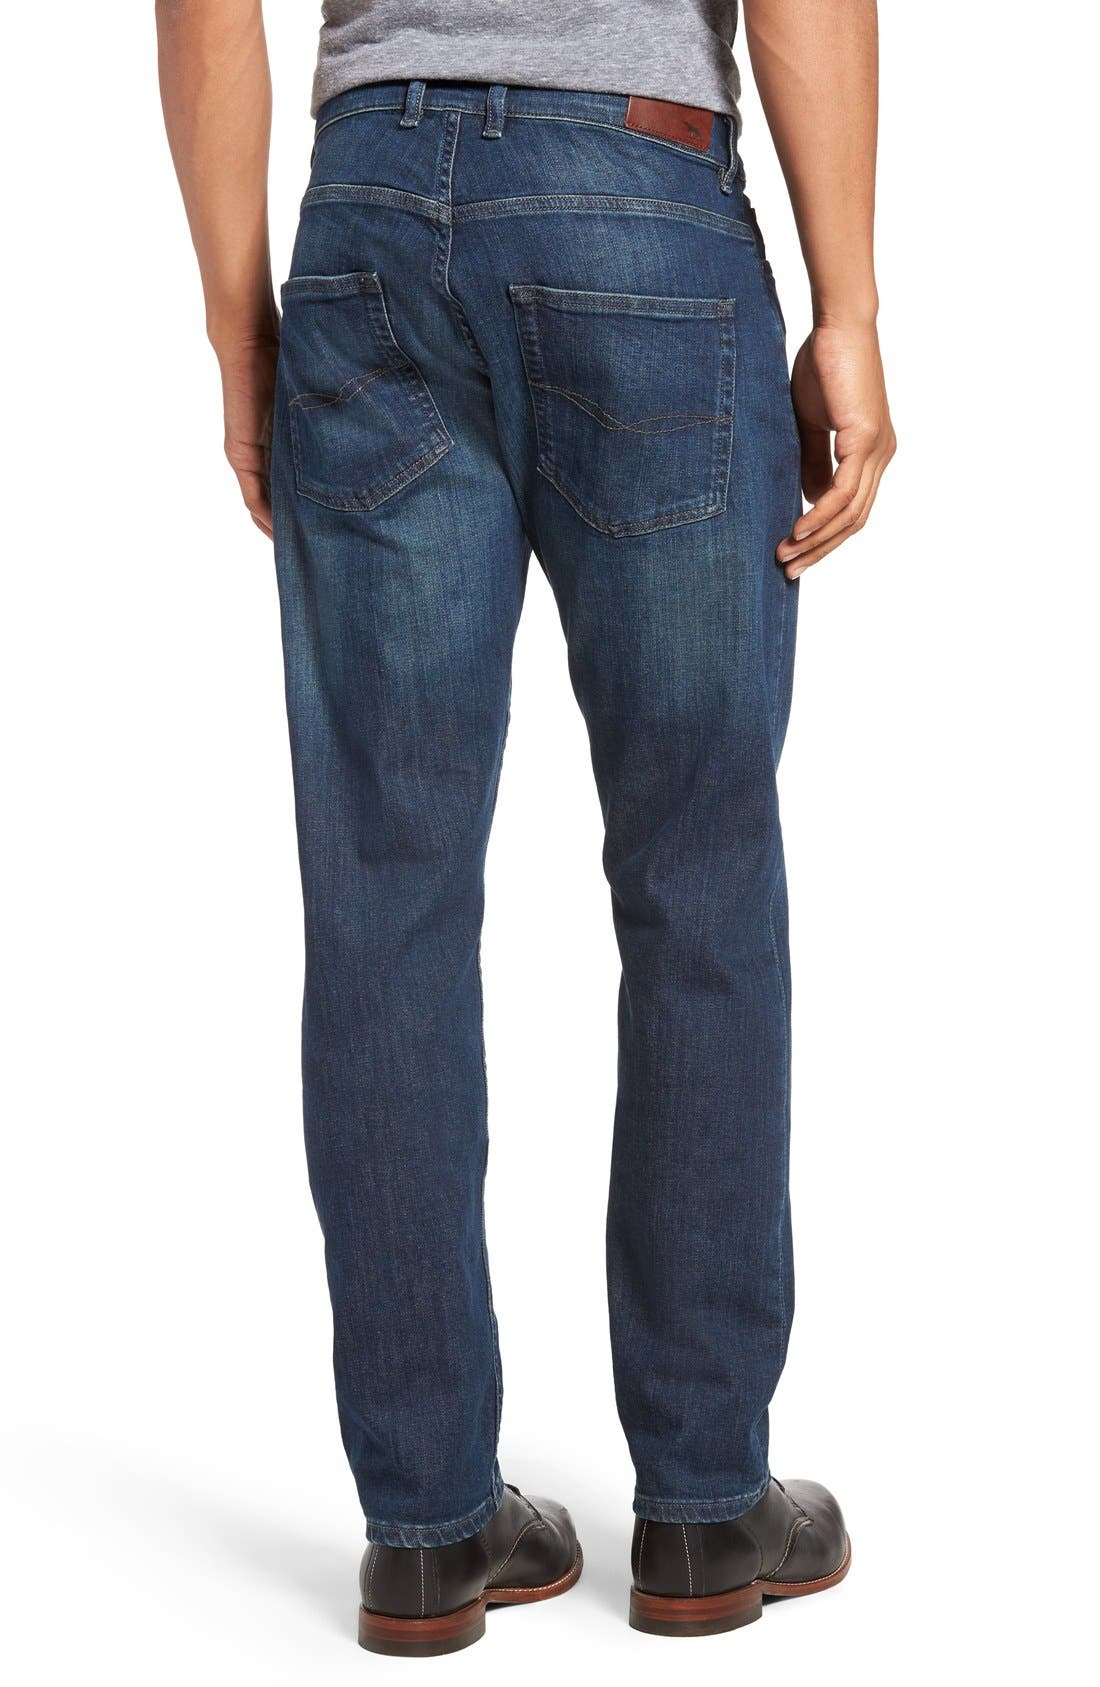 Calvert Slim Fit Jeans,                             Alternate thumbnail 2, color,                             400